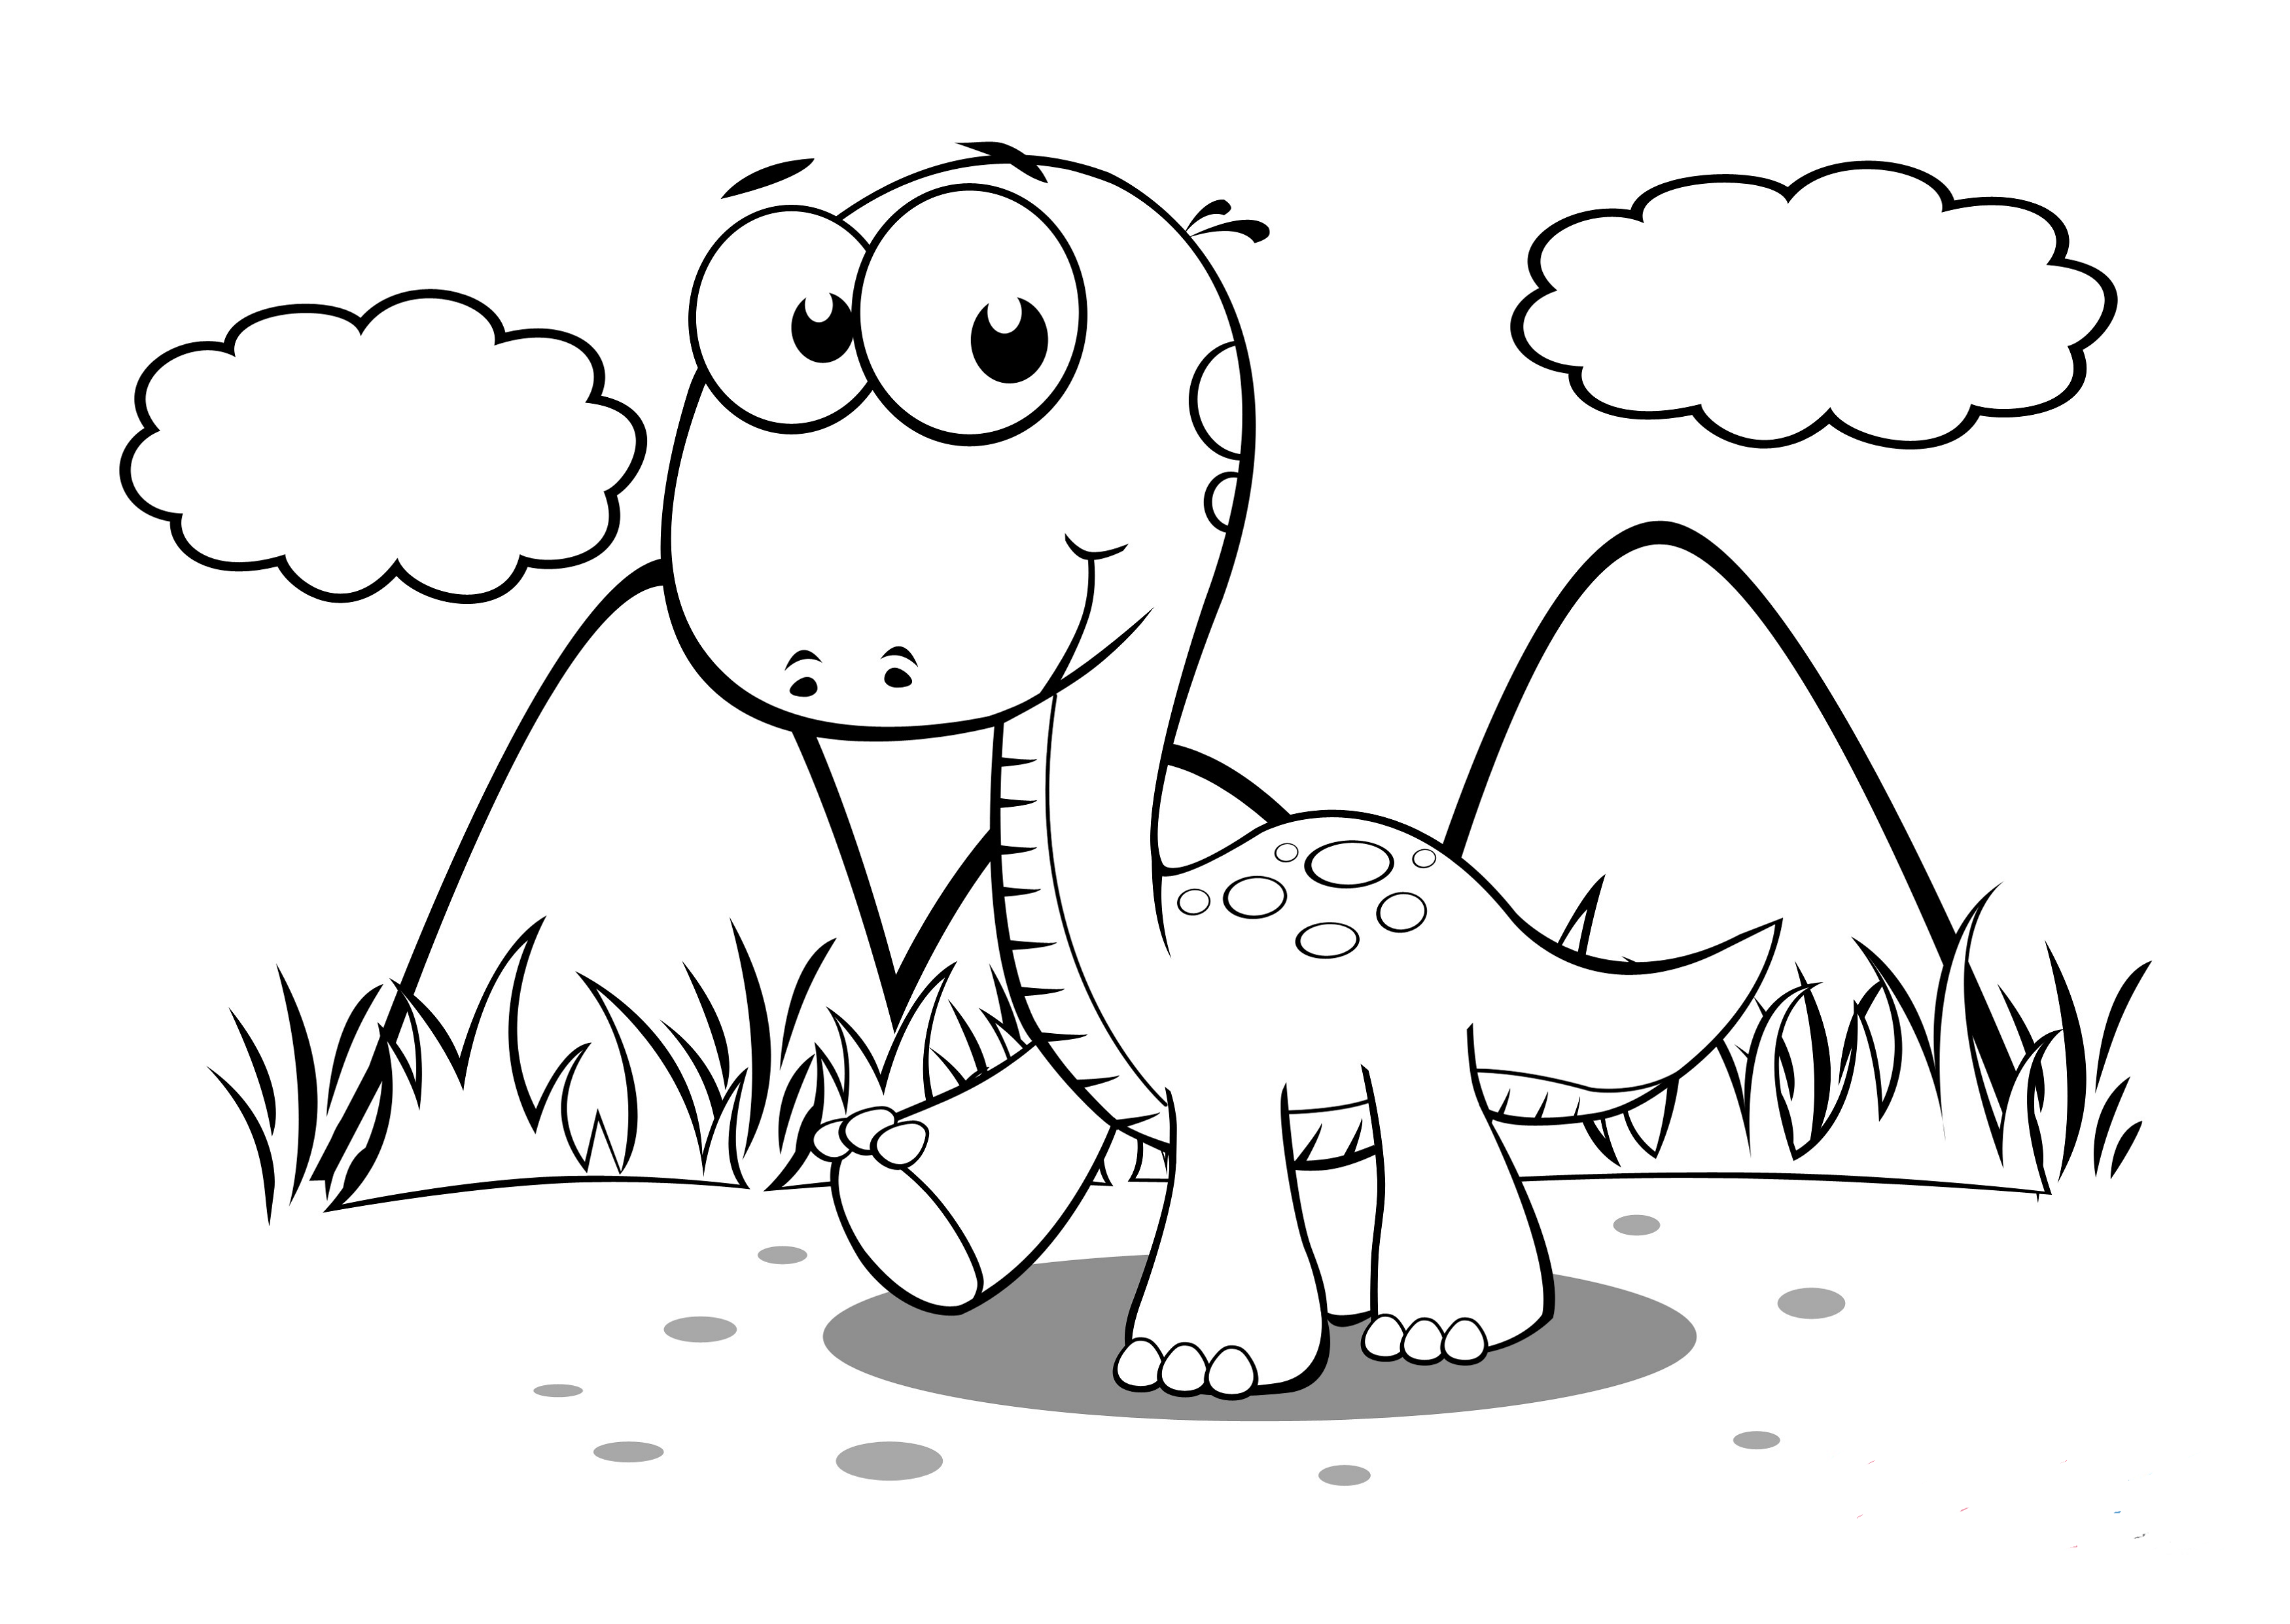 free printable coloring pages of dinosaurs baby dinosaur coloring pages for preschoolers activity pages coloring printable free dinosaurs of